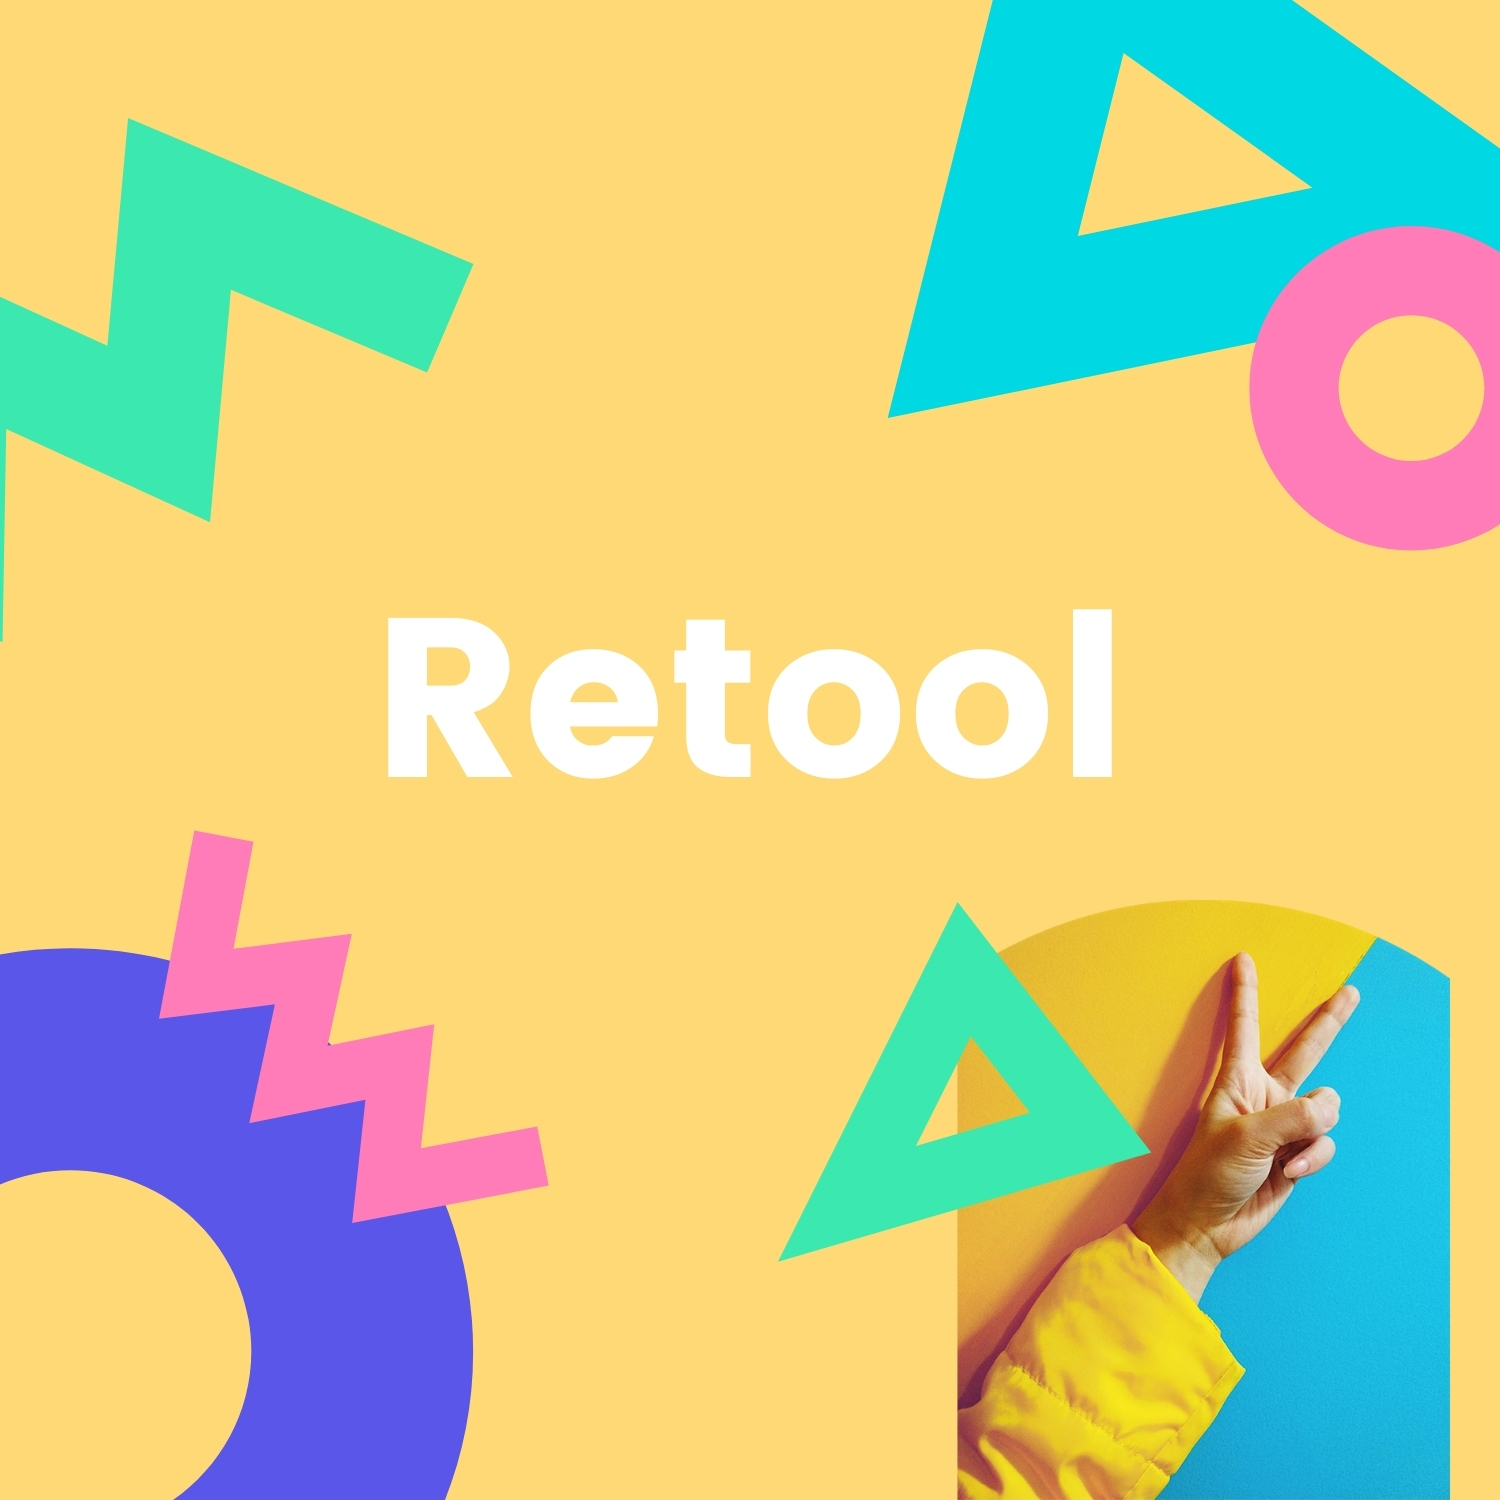 retool yourself with design and innovation tools